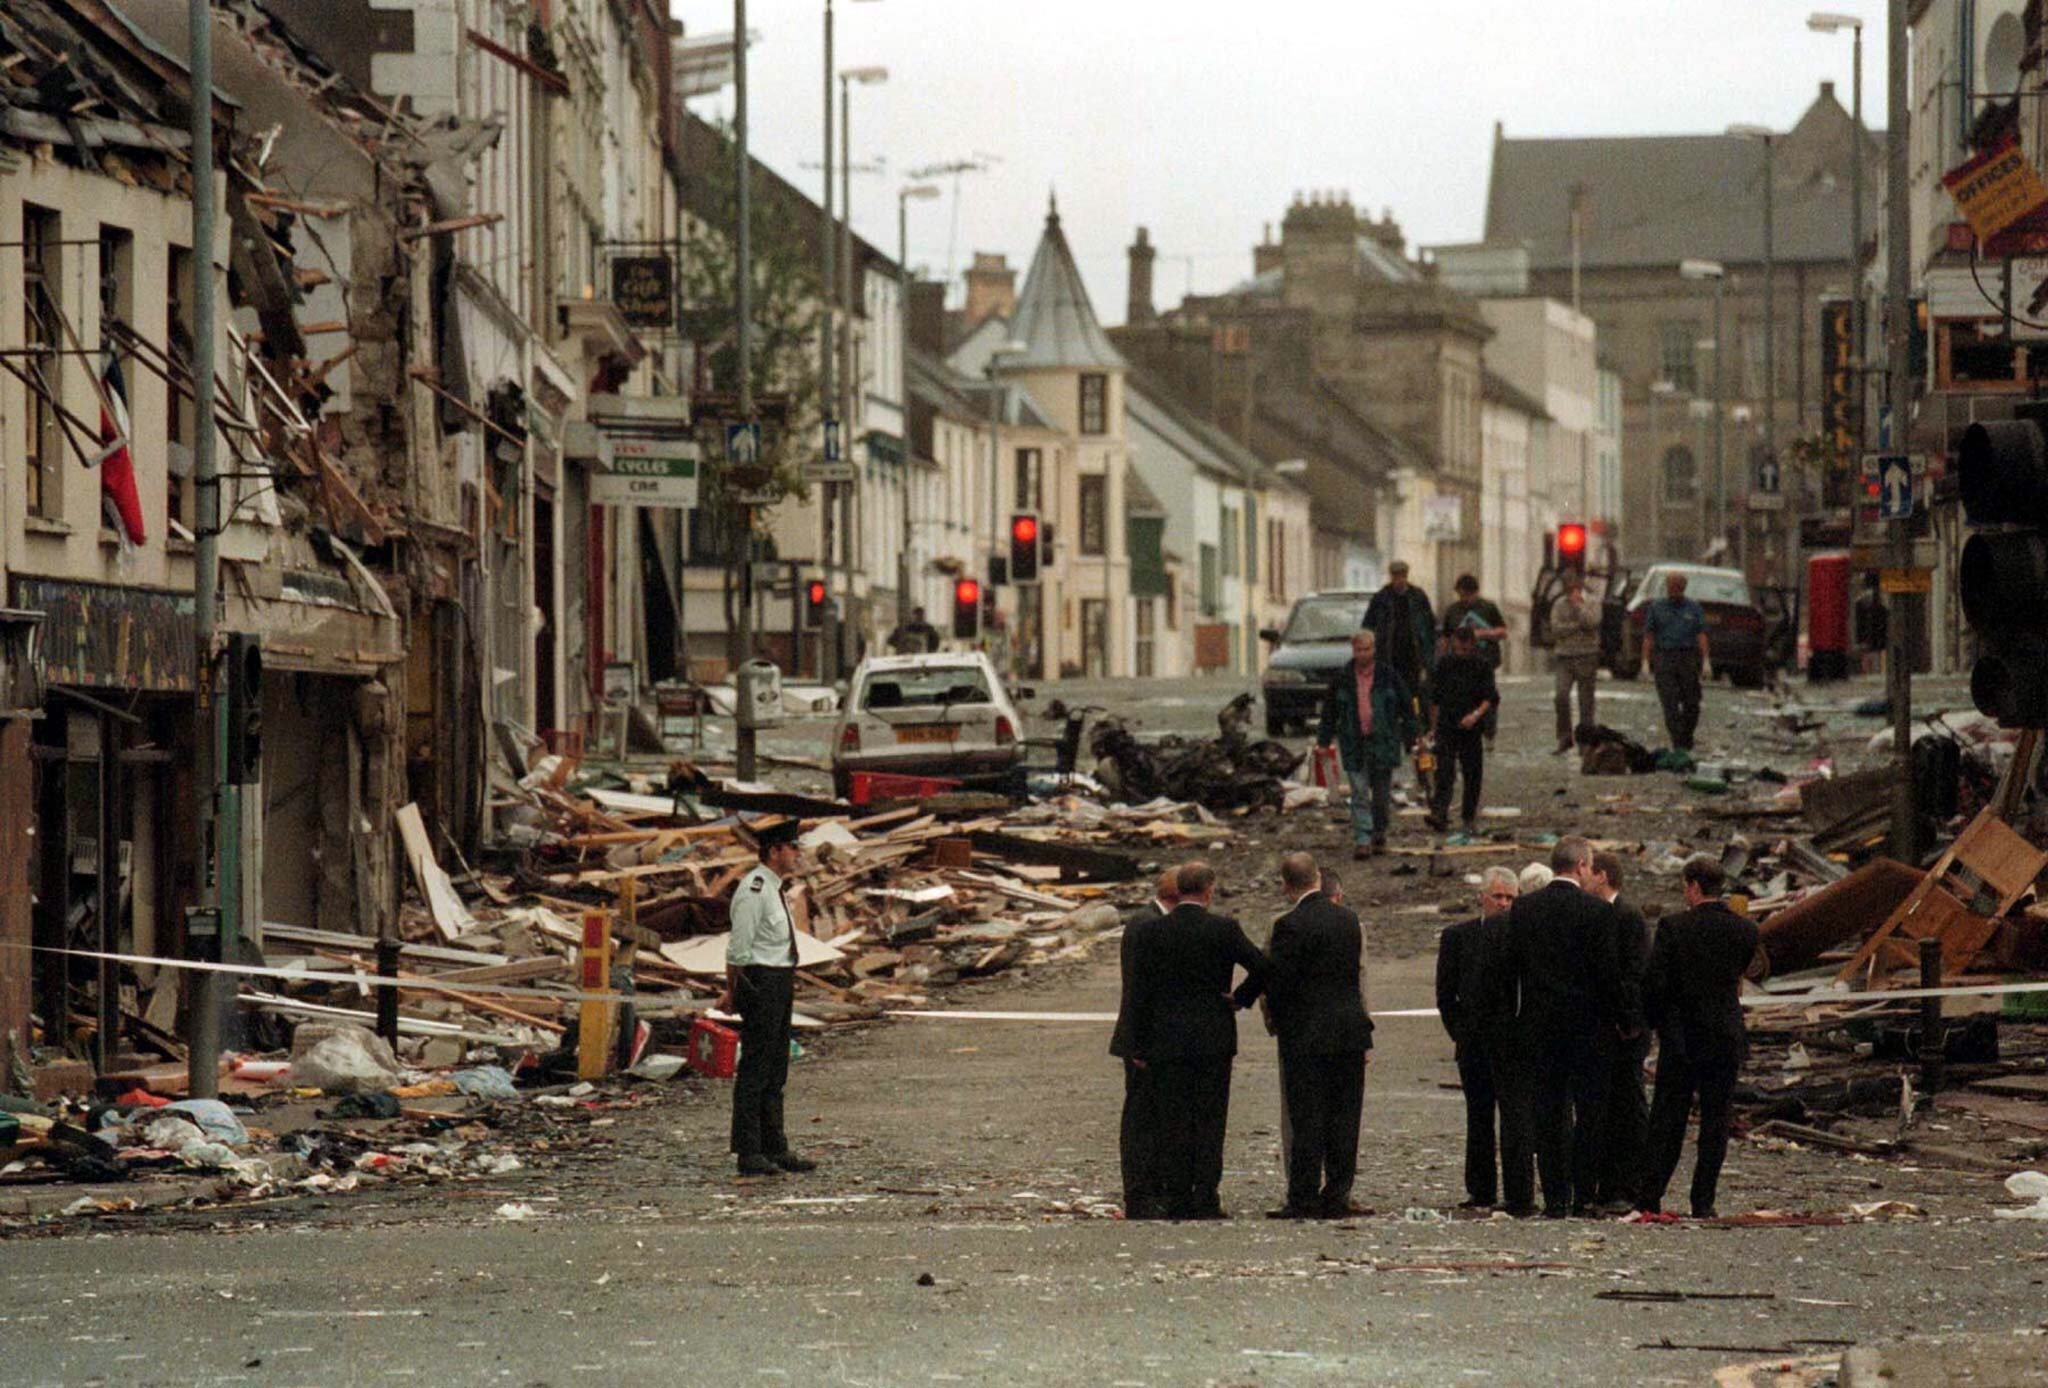 IRA APOLOGISES TO FAMILIES OF CIBVILAN CASUALTIES.